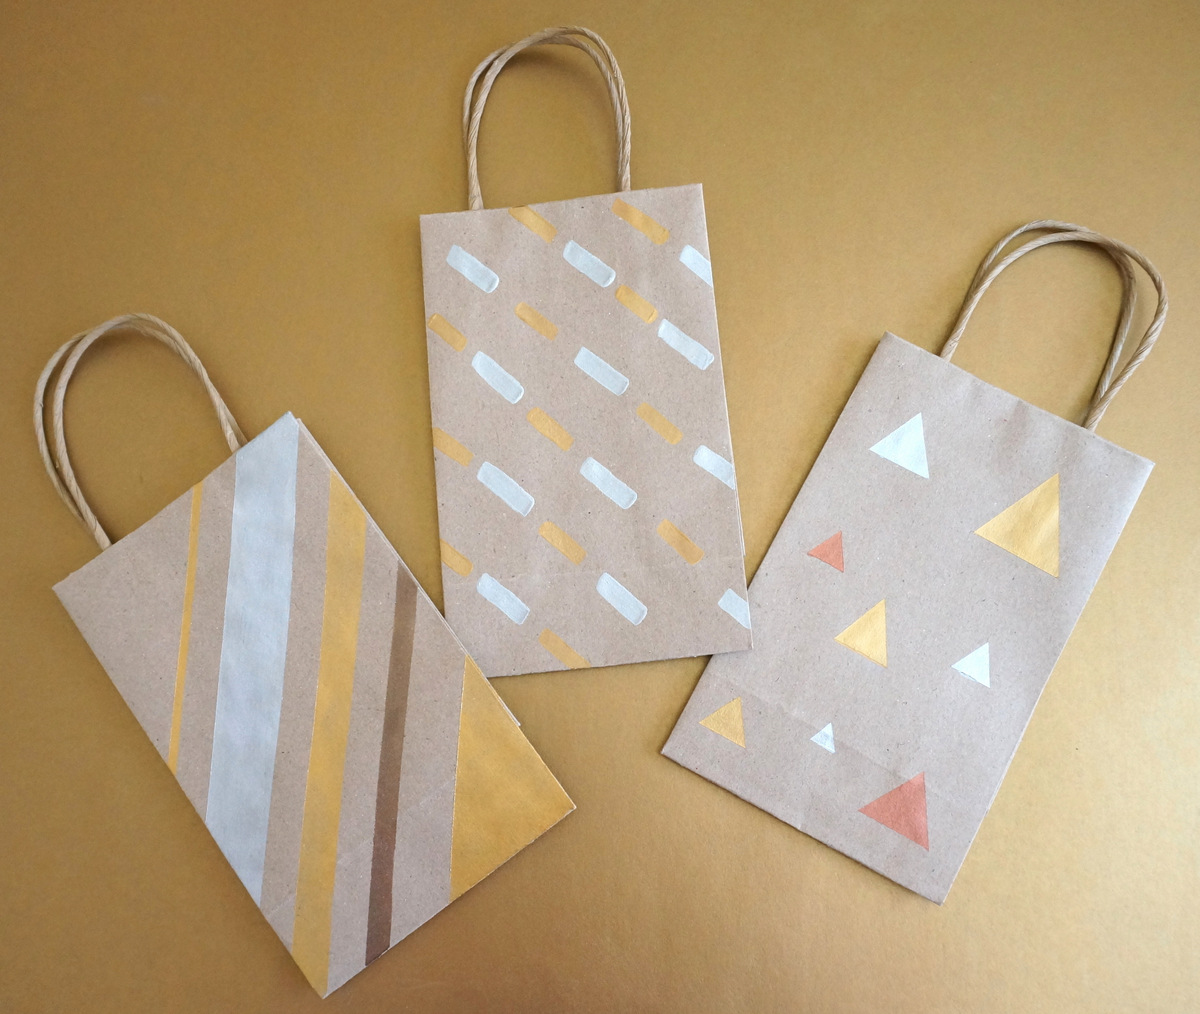 DIY gift bags with metallic designs